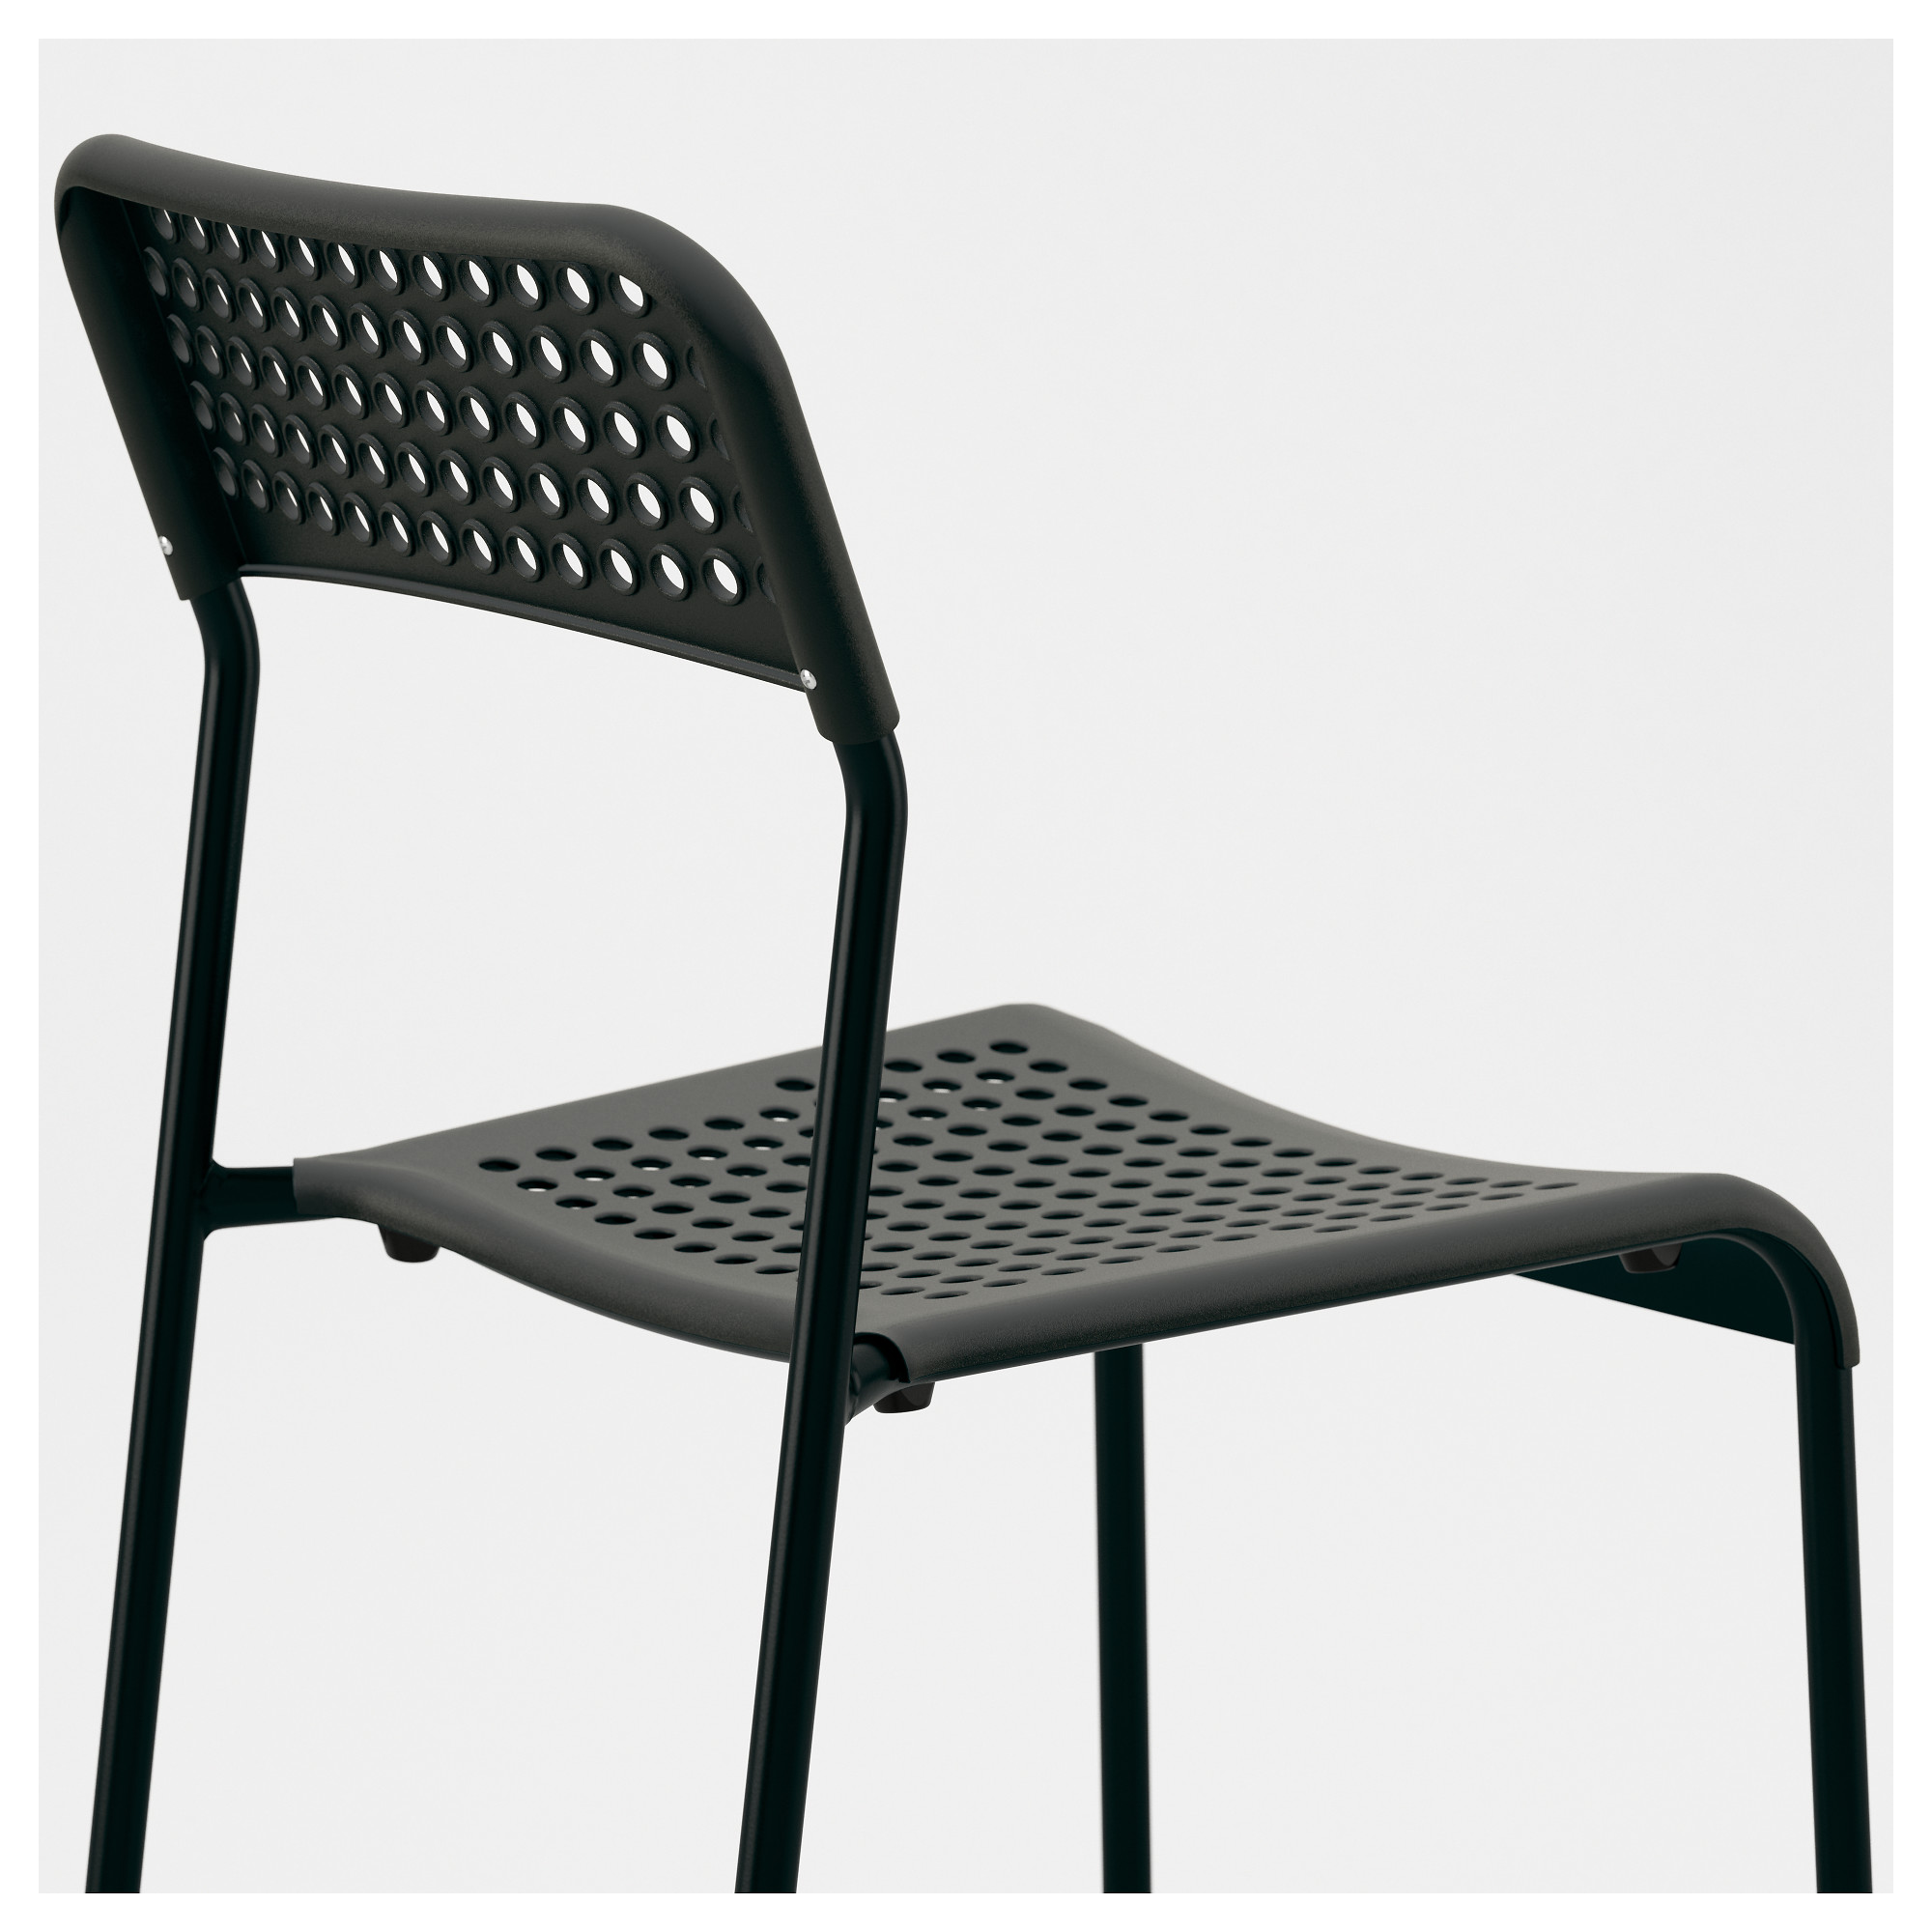 Black Stackable Chairs adde chair - ikea